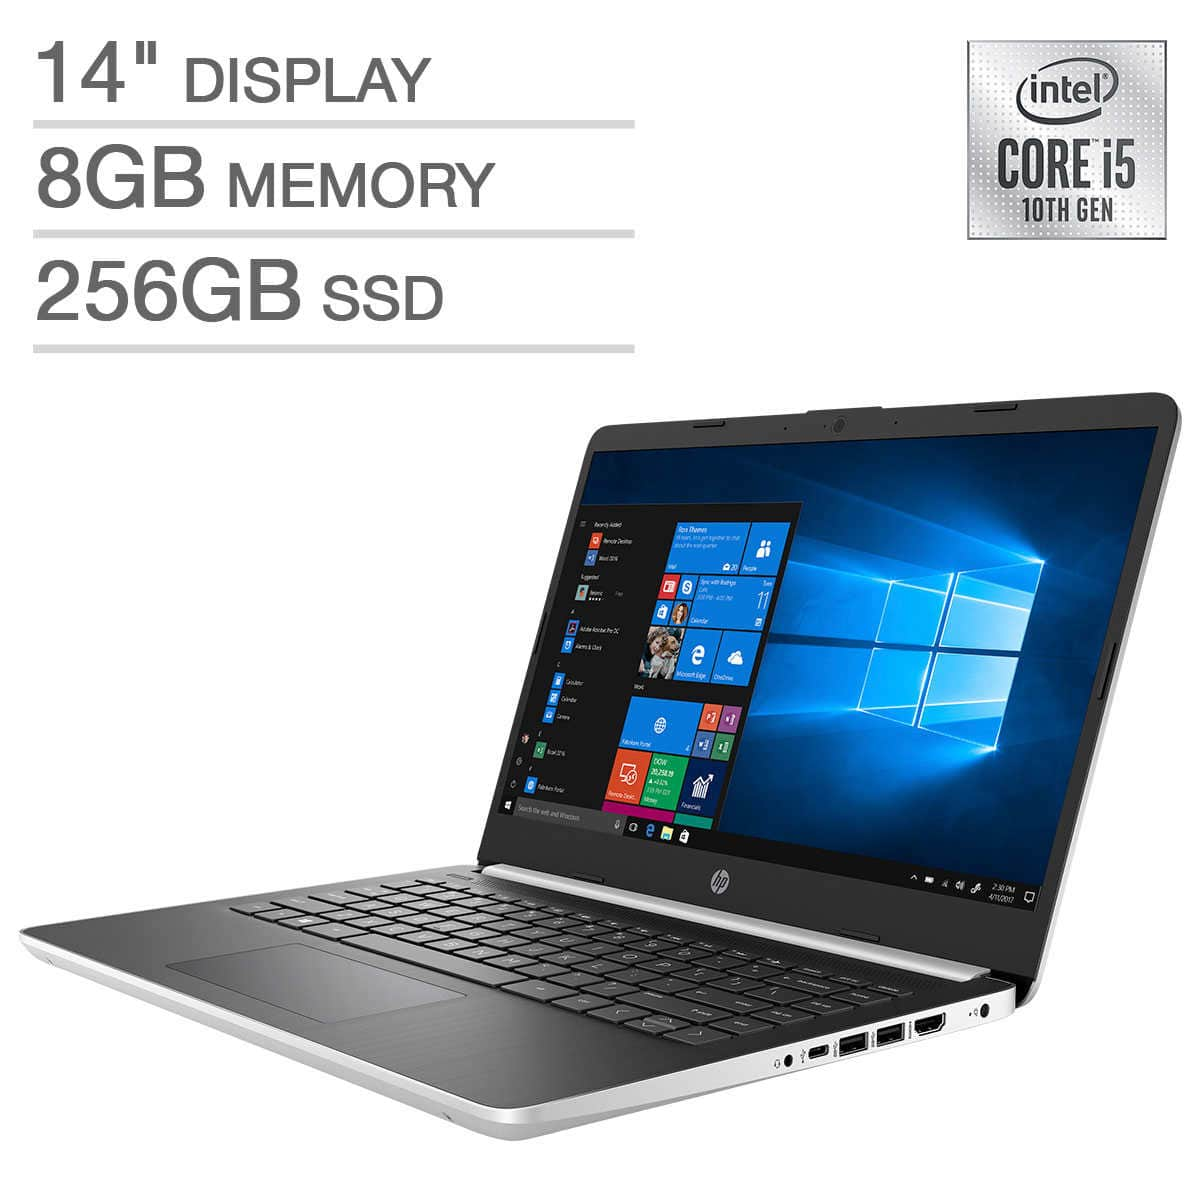 "HP 14"" 1080p i5-10th Gen i5-1035G1 / 8GB DDR4 / 256GB SSD $399"